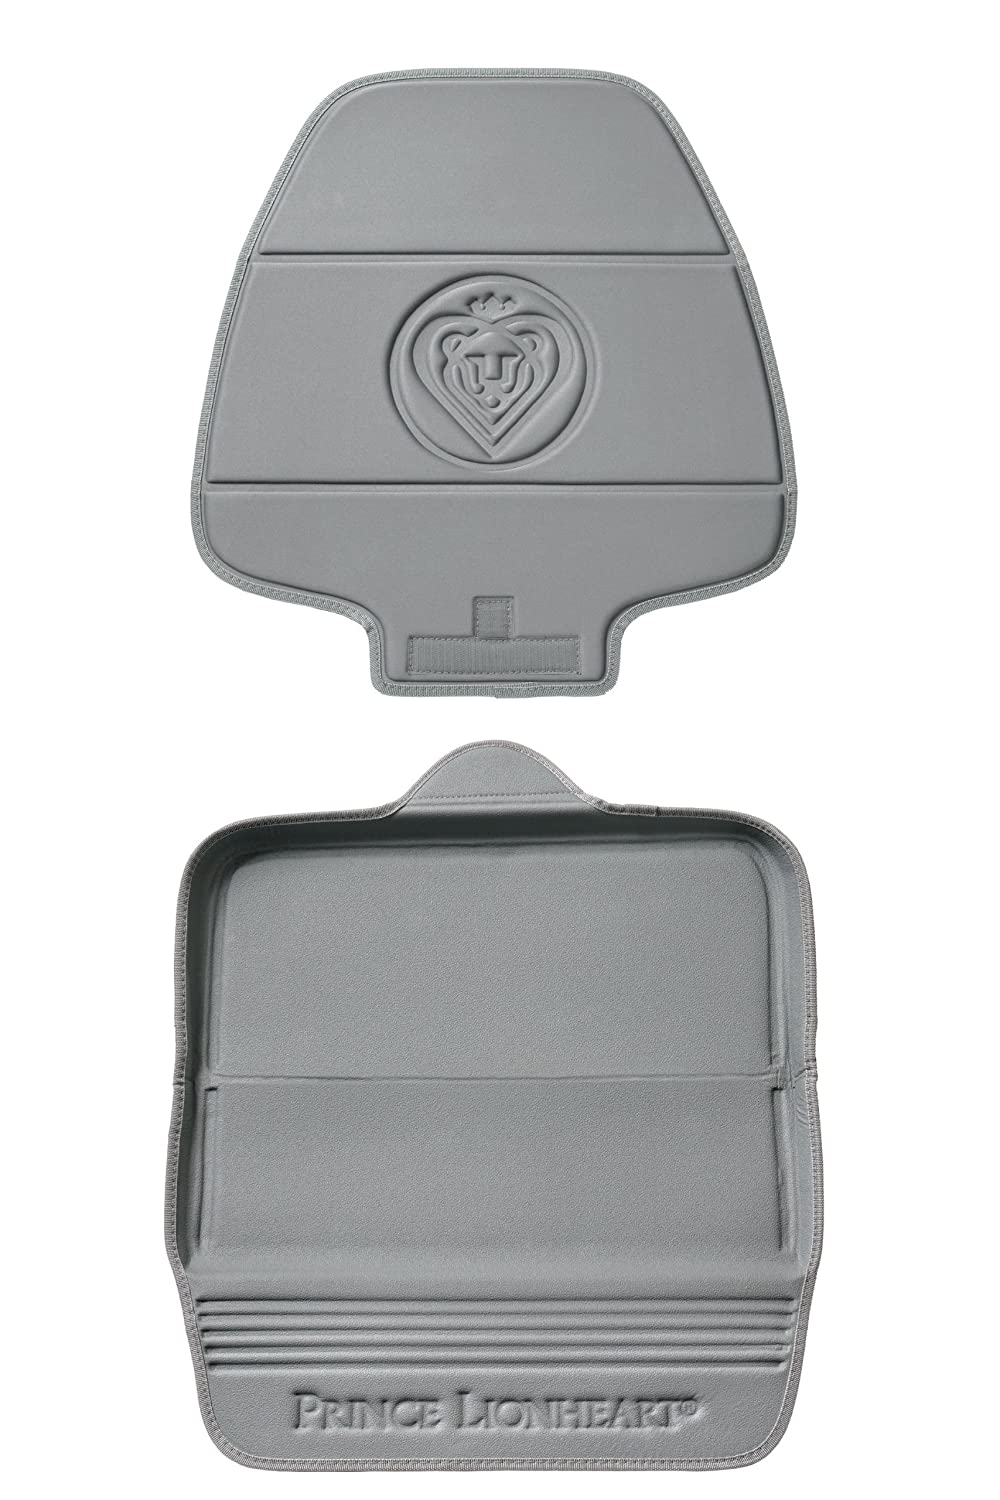 Prince Lionheart 2 Stage Seatsaver, Gray 0566